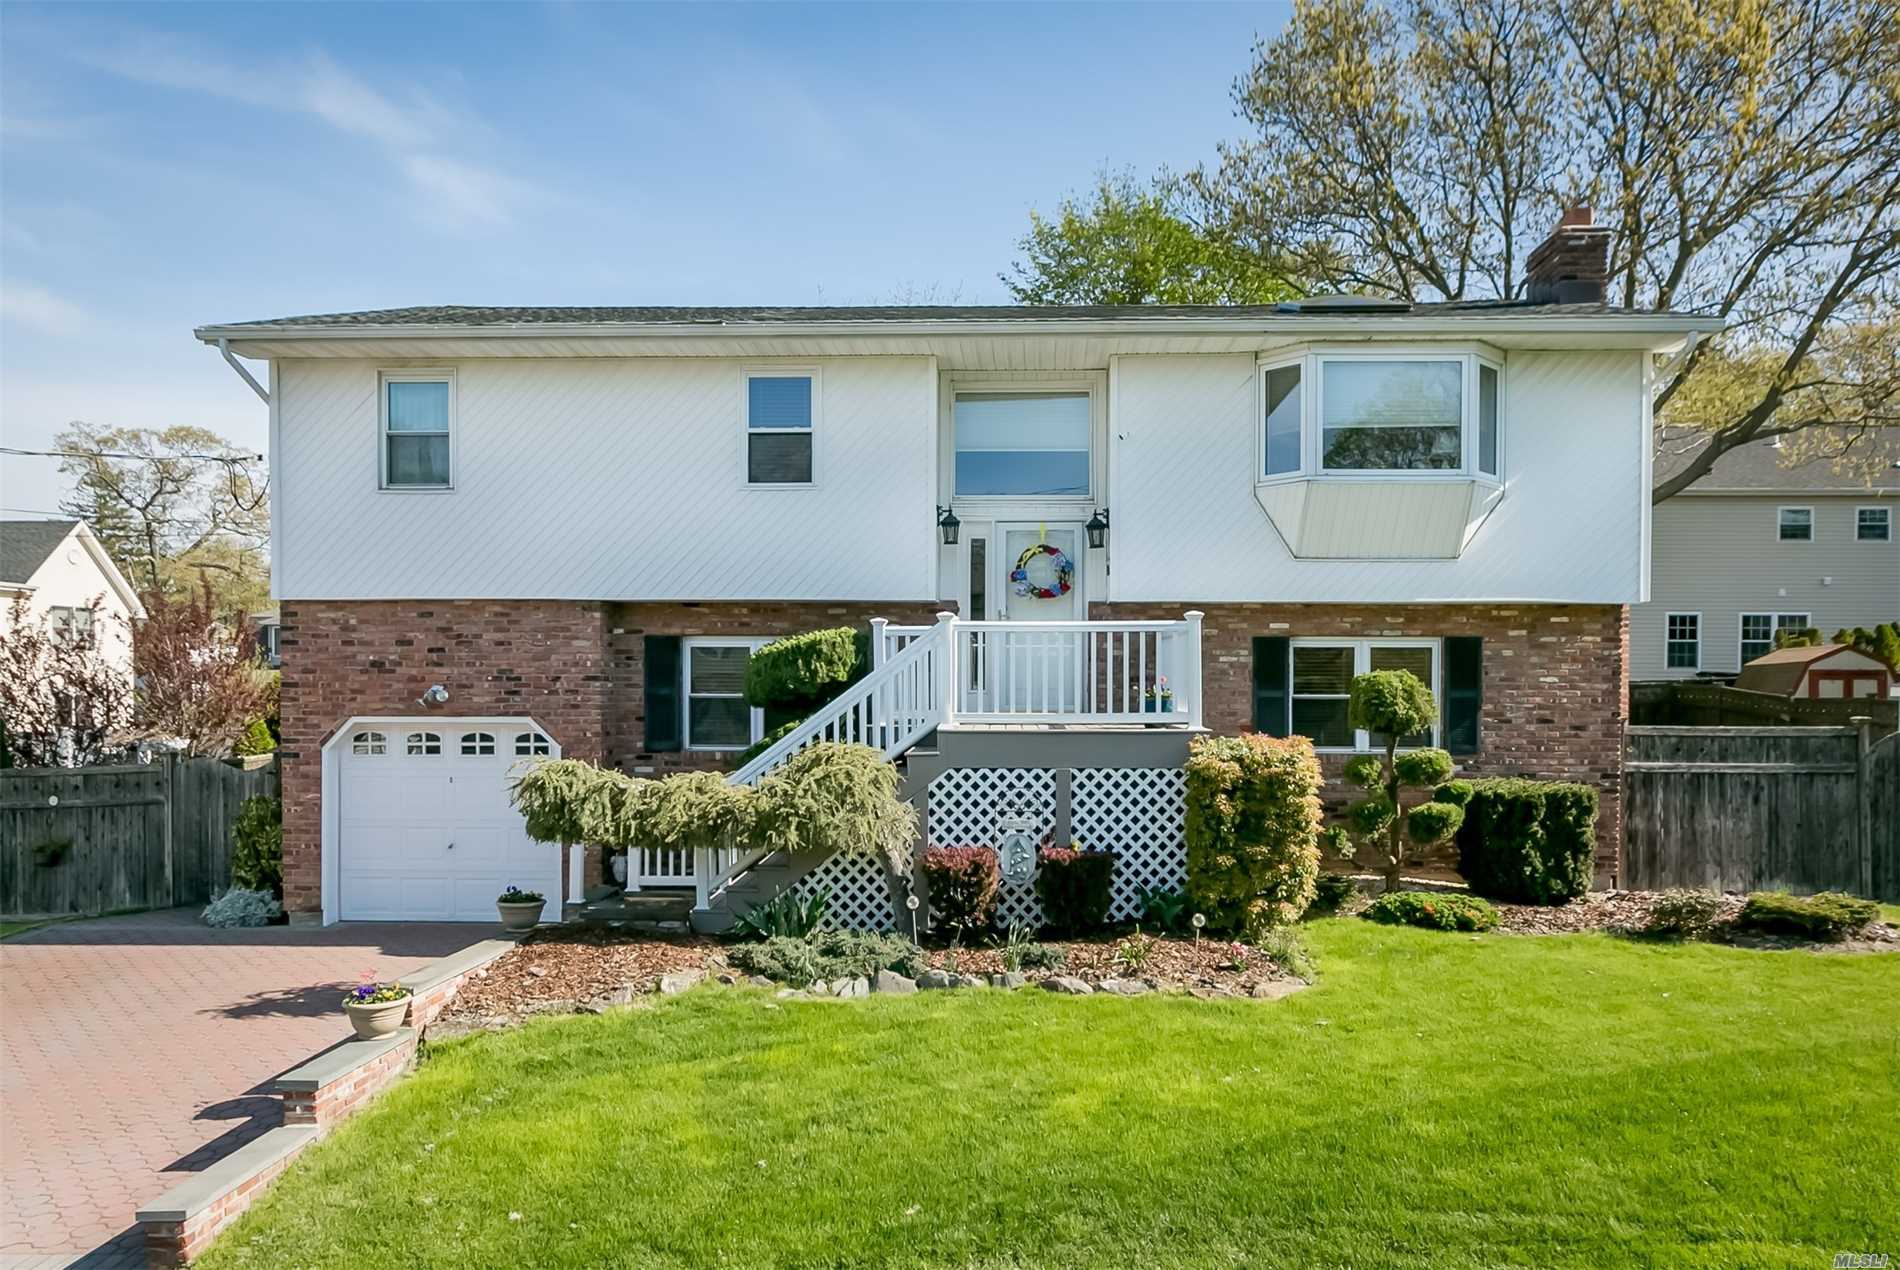 Immaculately Maintained Over-sized High Ranch with Full Basement (exit to yard) Located on a private cul-de-sac in Renowned Bethpage School District 21. Many Updates including Kitchen, Windows, & Roof. Also includes Ductless Heat/Air System Downstairs, CAC Upstairs, 2 Composite (TREX) Decks - one with Built in Seating. Tons of Closets & Storage Throughout. Close to LIRR, Library, Town, Park & Championship Golf Course. New Price.  Don't pass this one up !